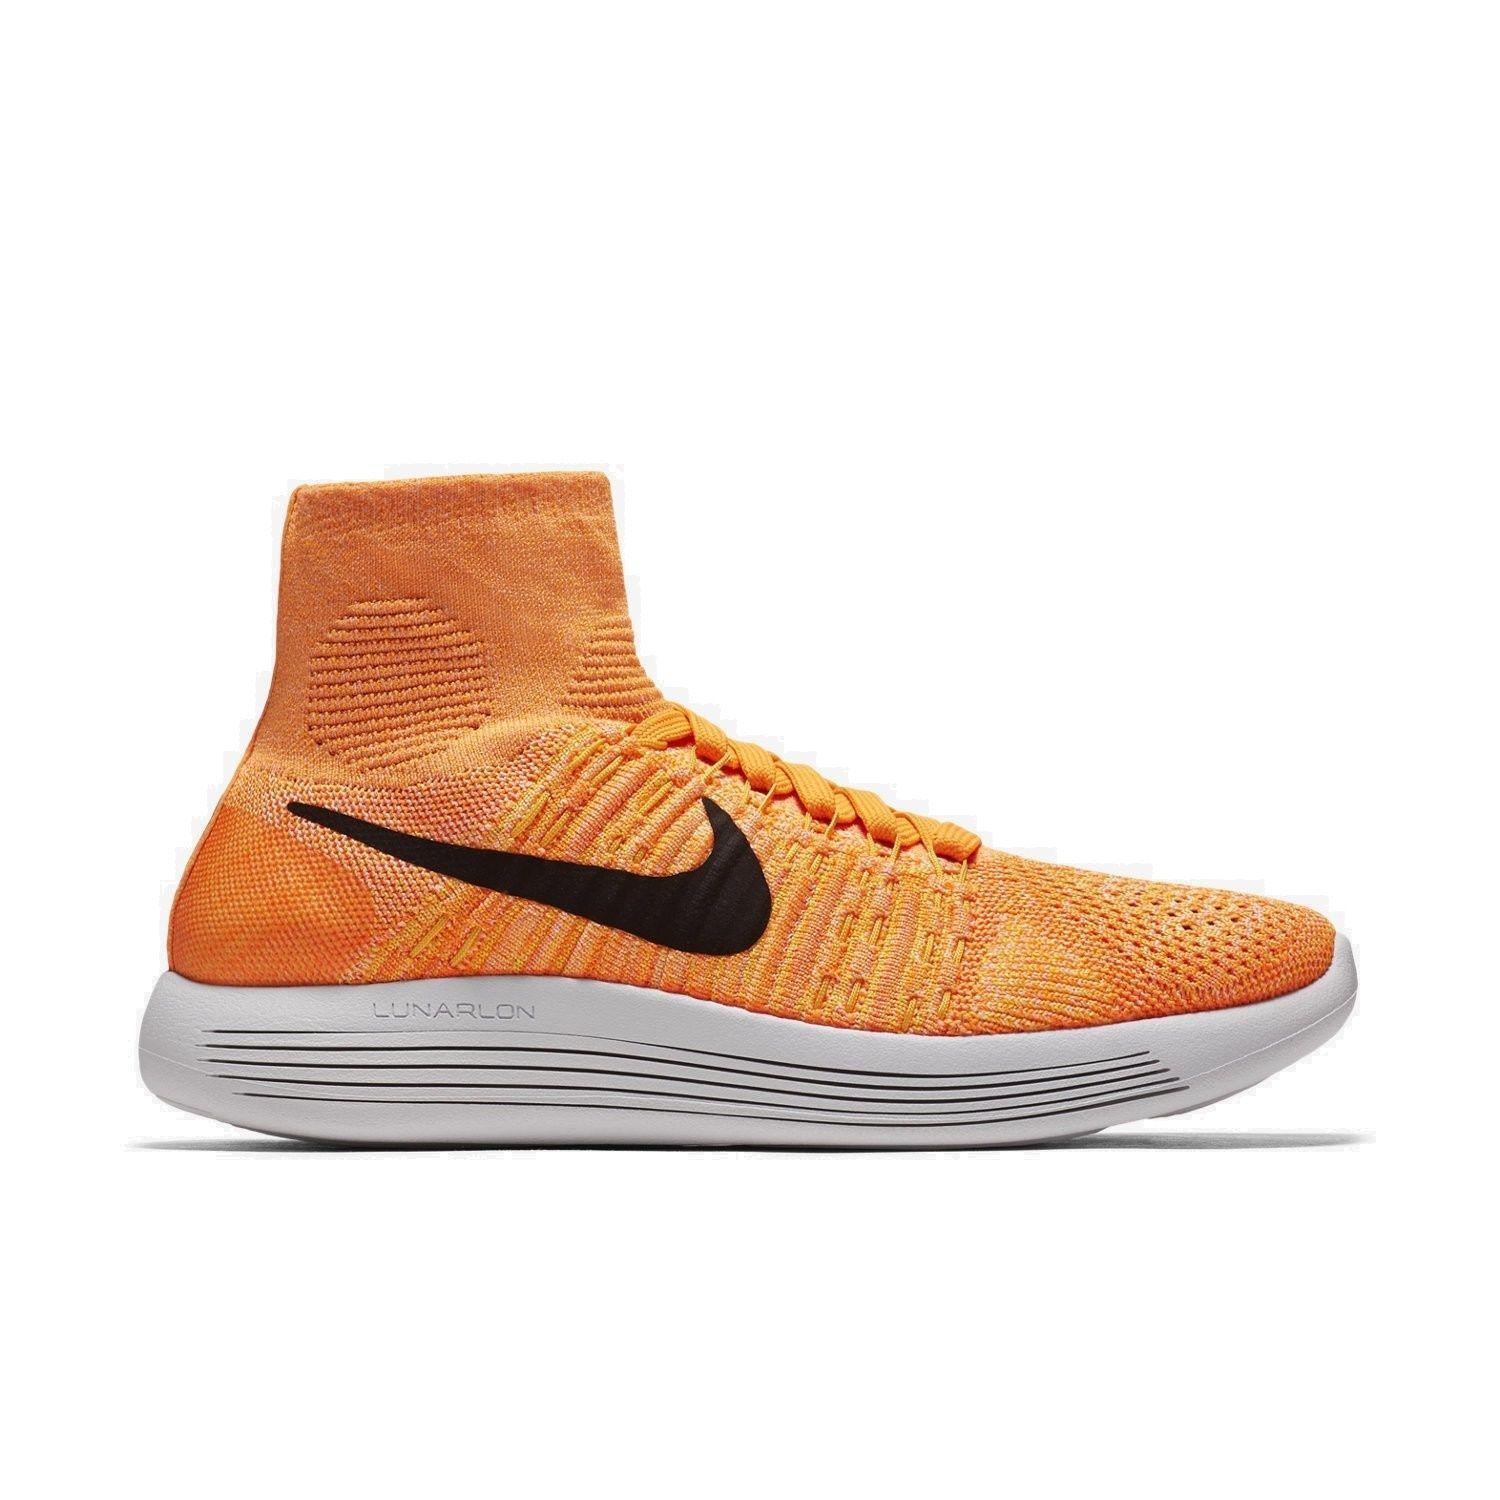 Zapatos promocionales para hombres y mujeres Womens NIKE LUNAREPIC FLYKNIT Textile Running Trainers 818677 801